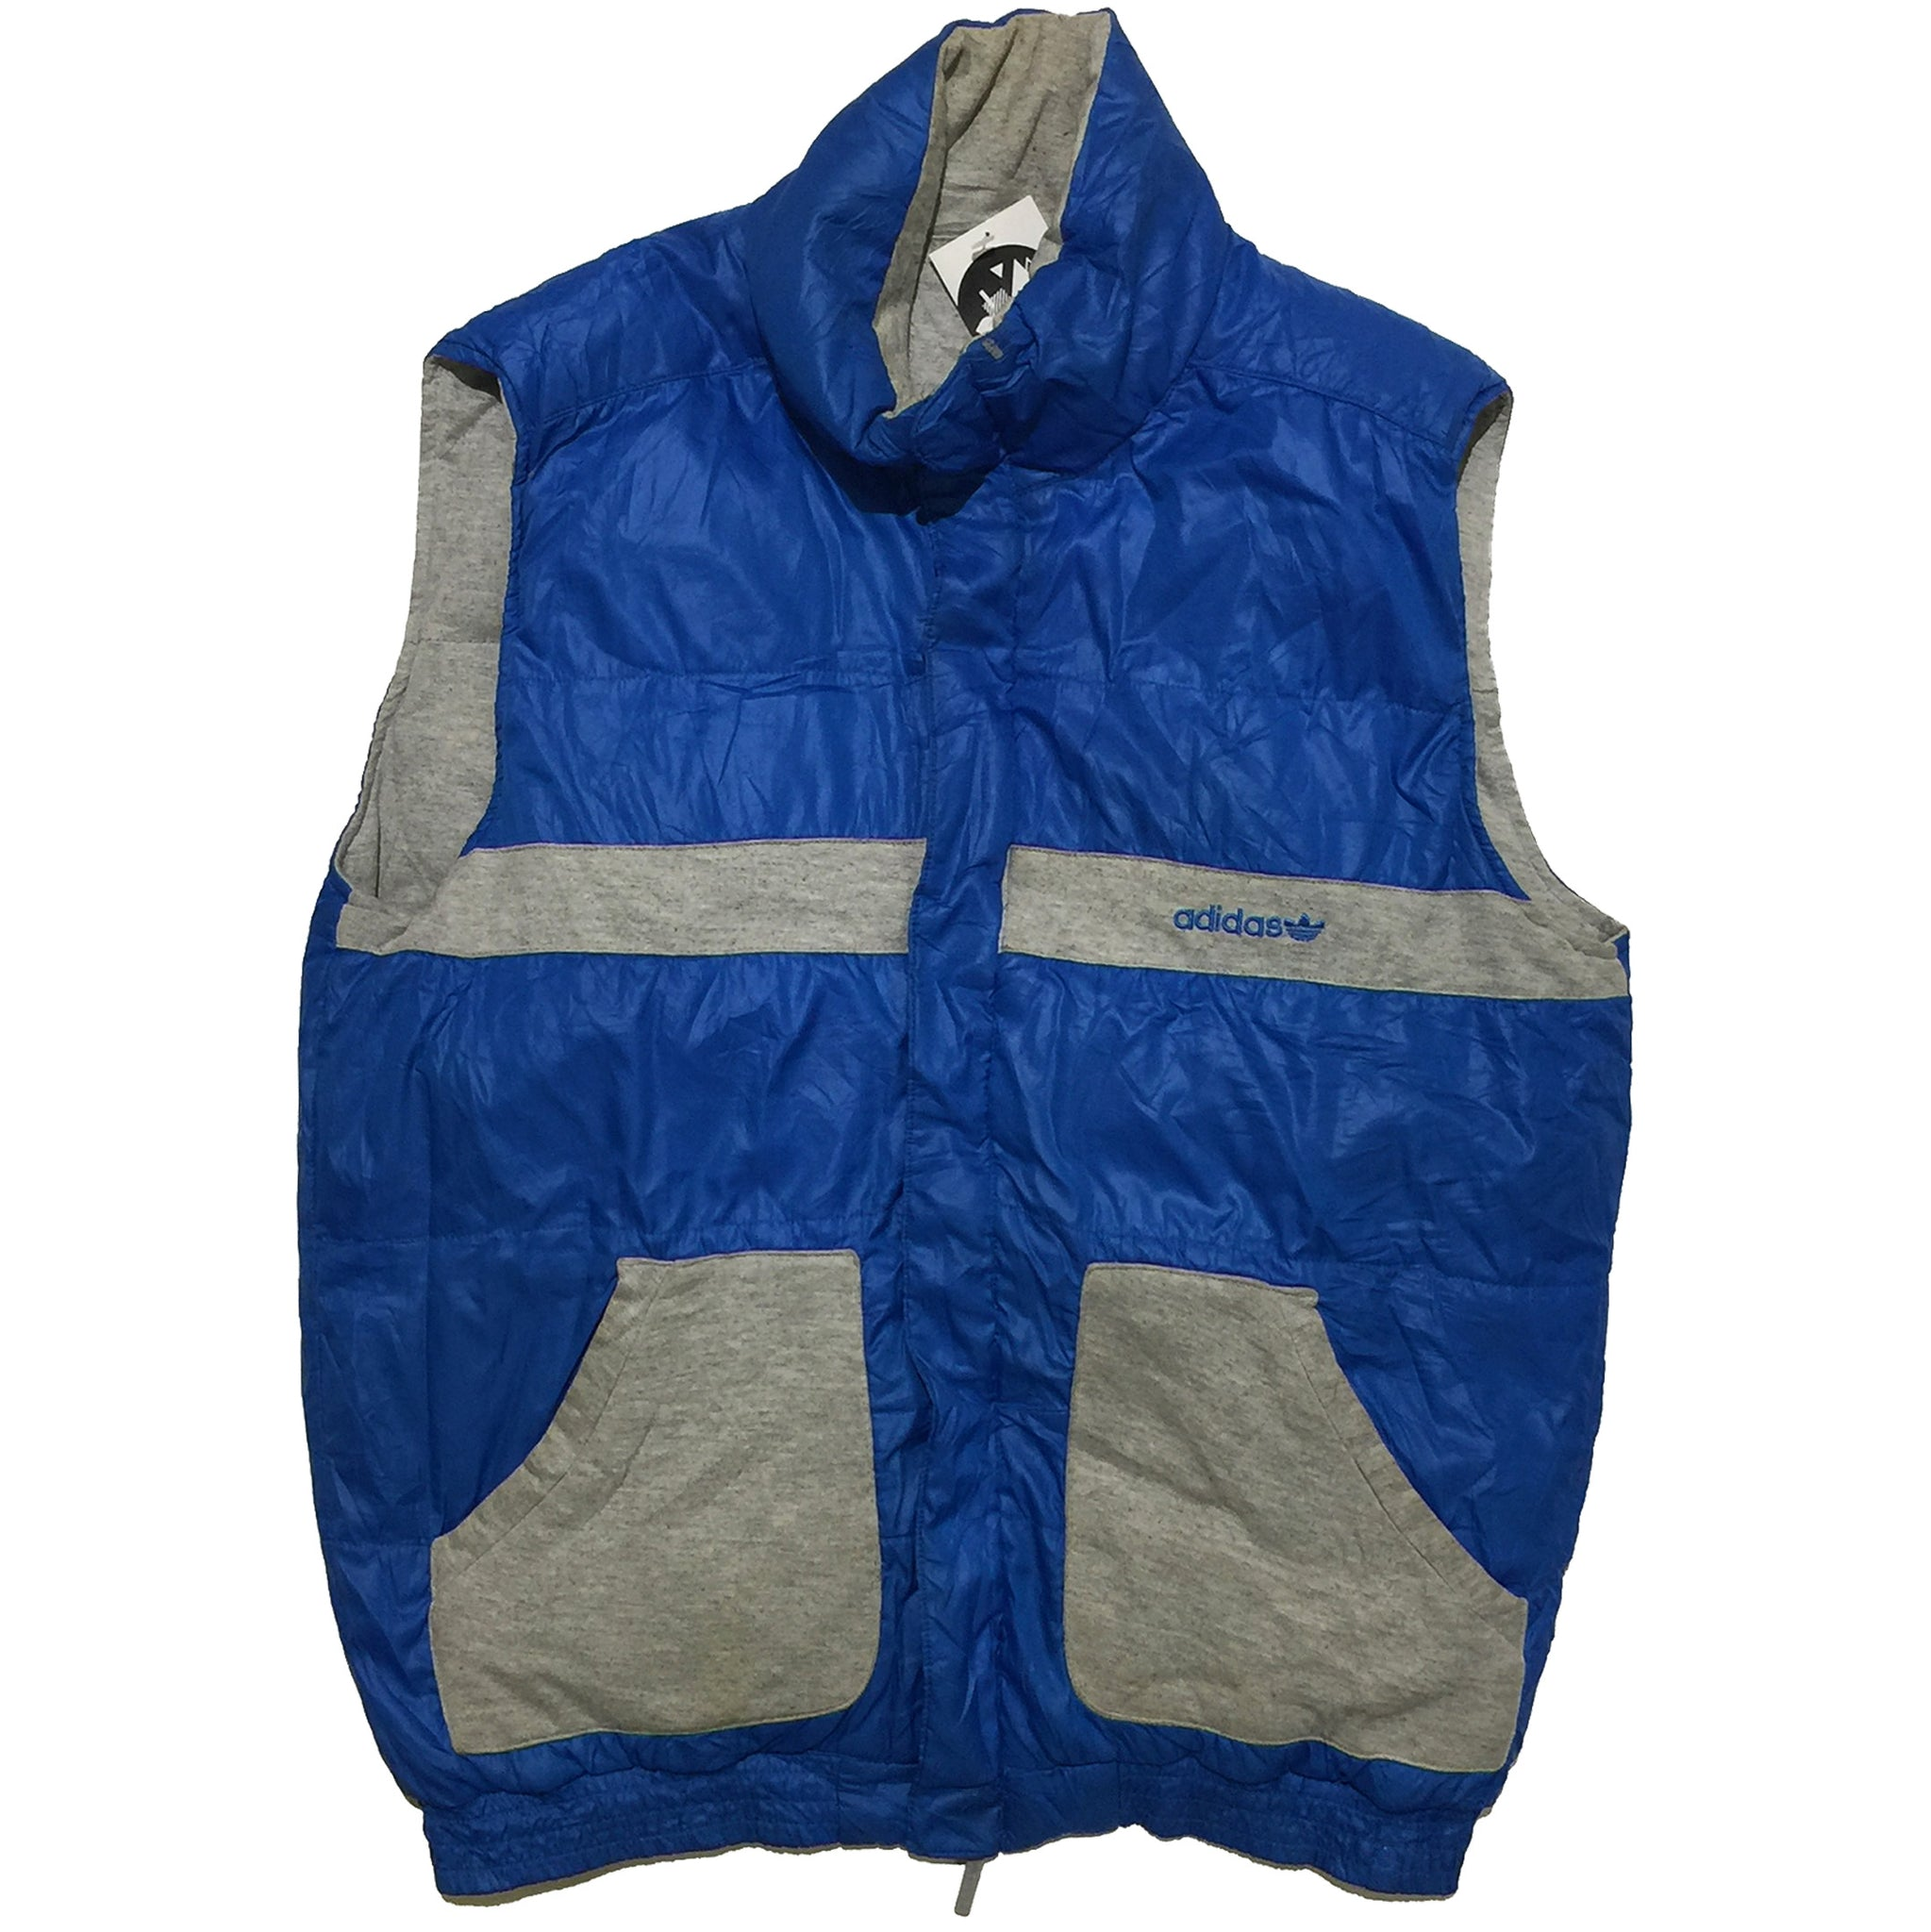 Adidas Blue and Grey Vest